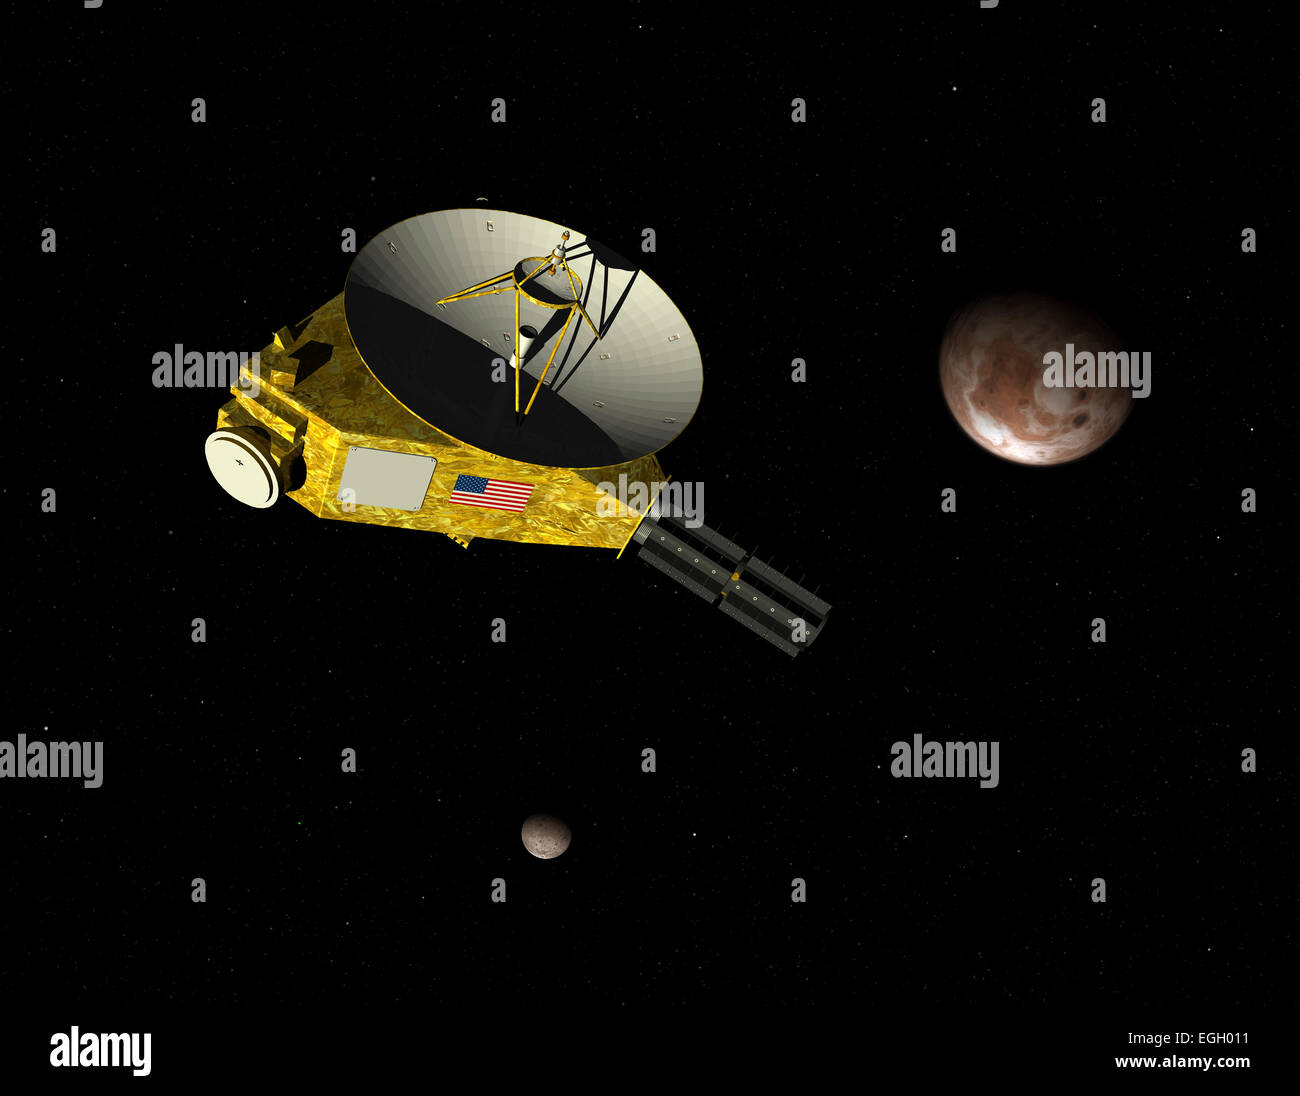 pluto and its satellites from the new horizons spacecraft Nasa's new horizons spacecraft is on a mission to collect data and images of the dwarf planet pluto, its surrounding moons and other objects in the kuiper belt.